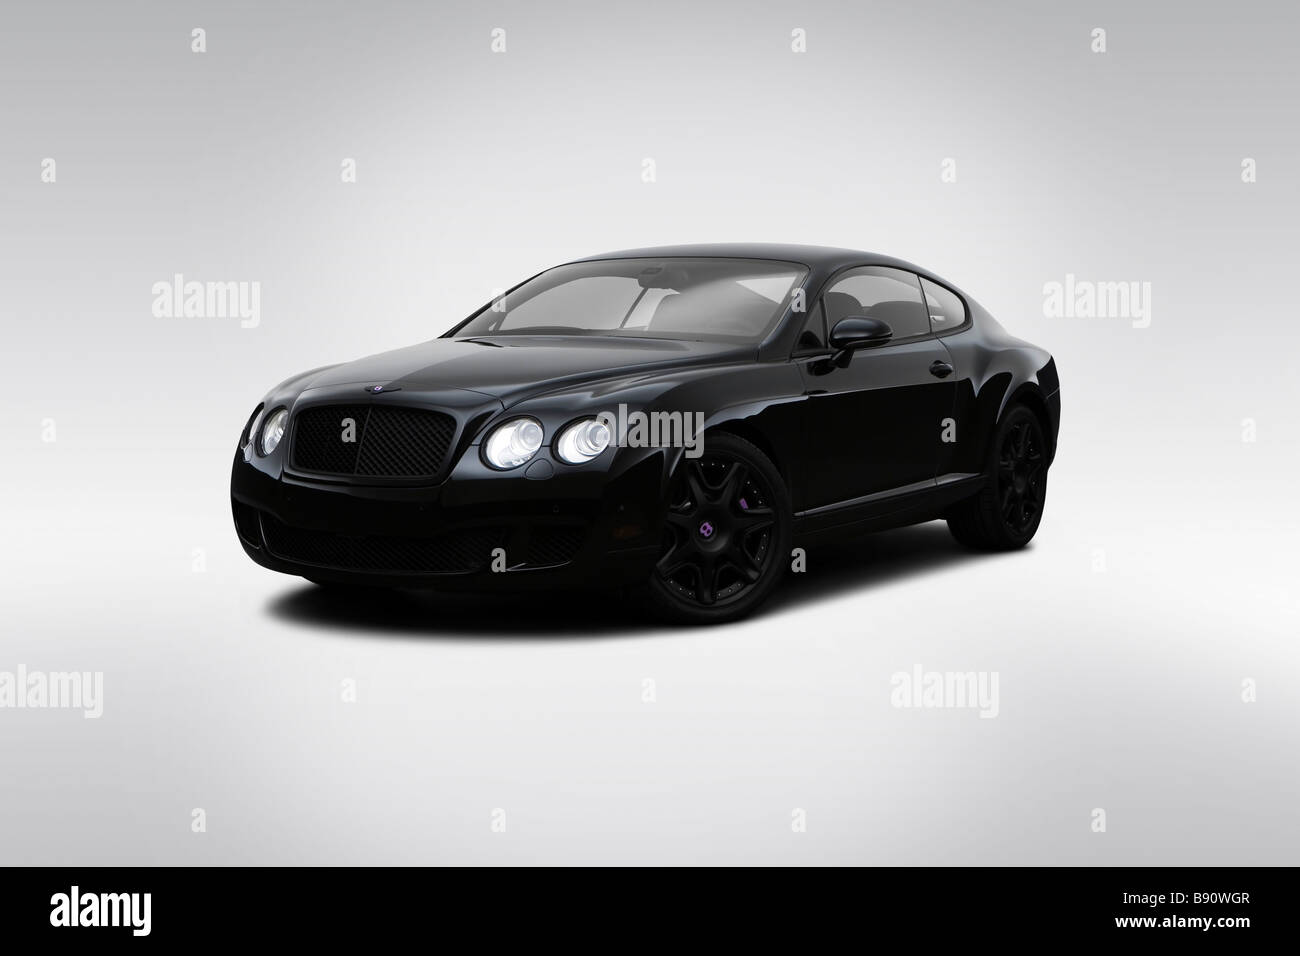 2009 Bentley Continental GT in schwarz - Winkel-Vorderansicht Stockbild